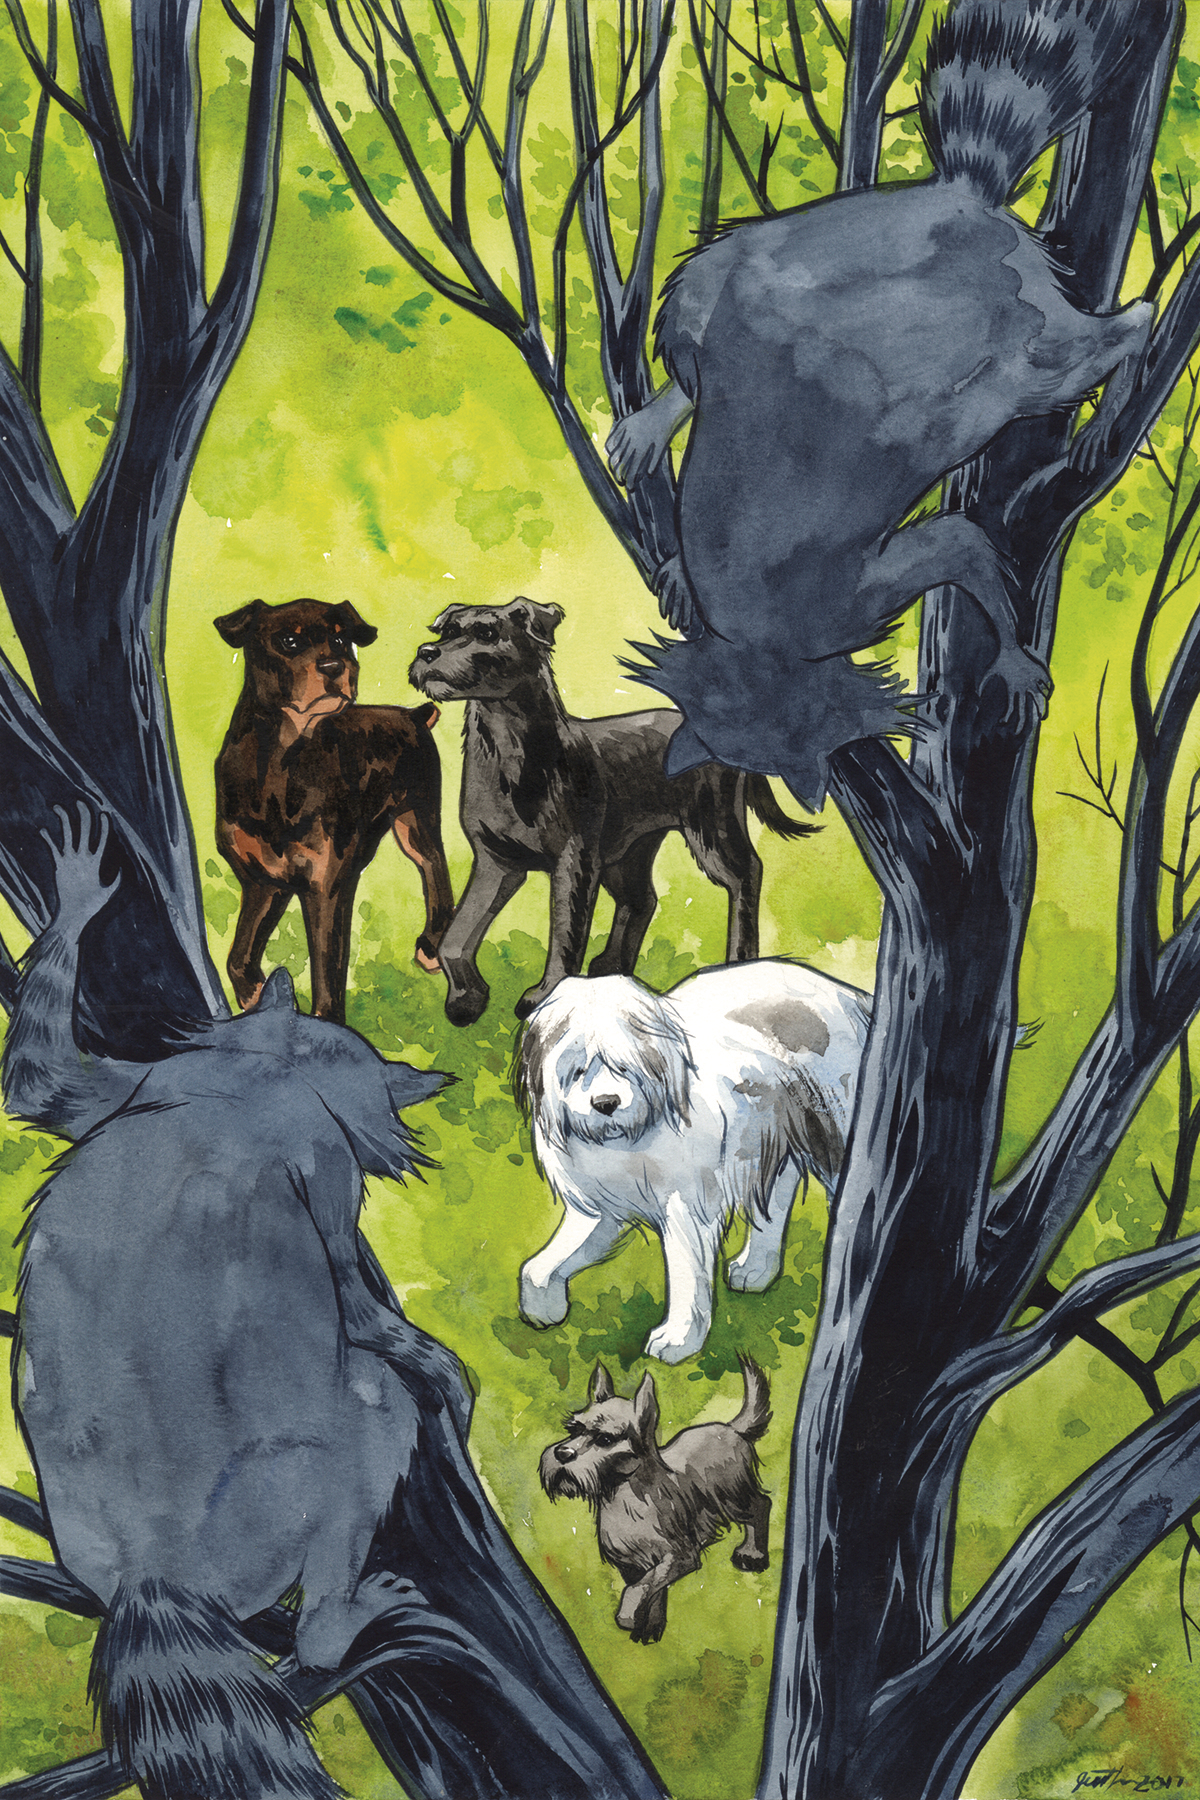 BEASTS OF BURDEN WISE DOGS & ELDRITCH MEN #4 (OF 4) CVR B TH